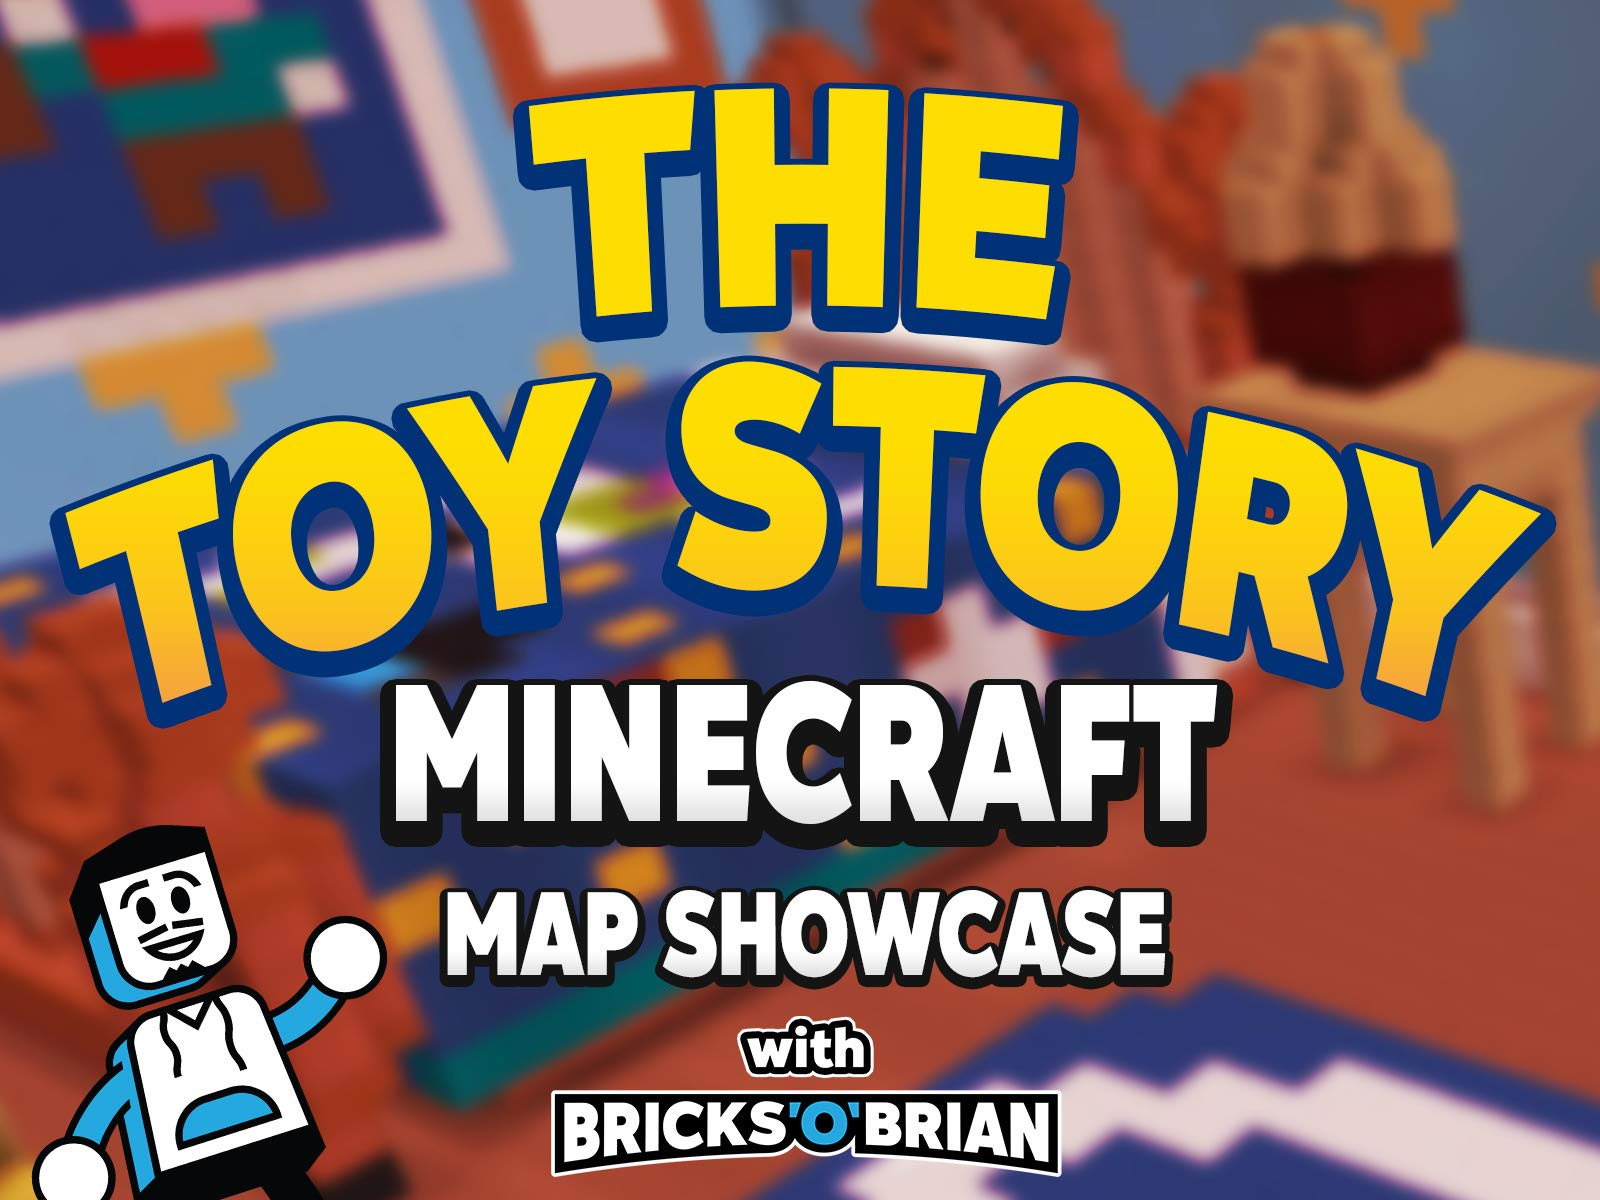 Amazon.com: Watch Clip: The Toy Story Minecraft Map Showcase ...